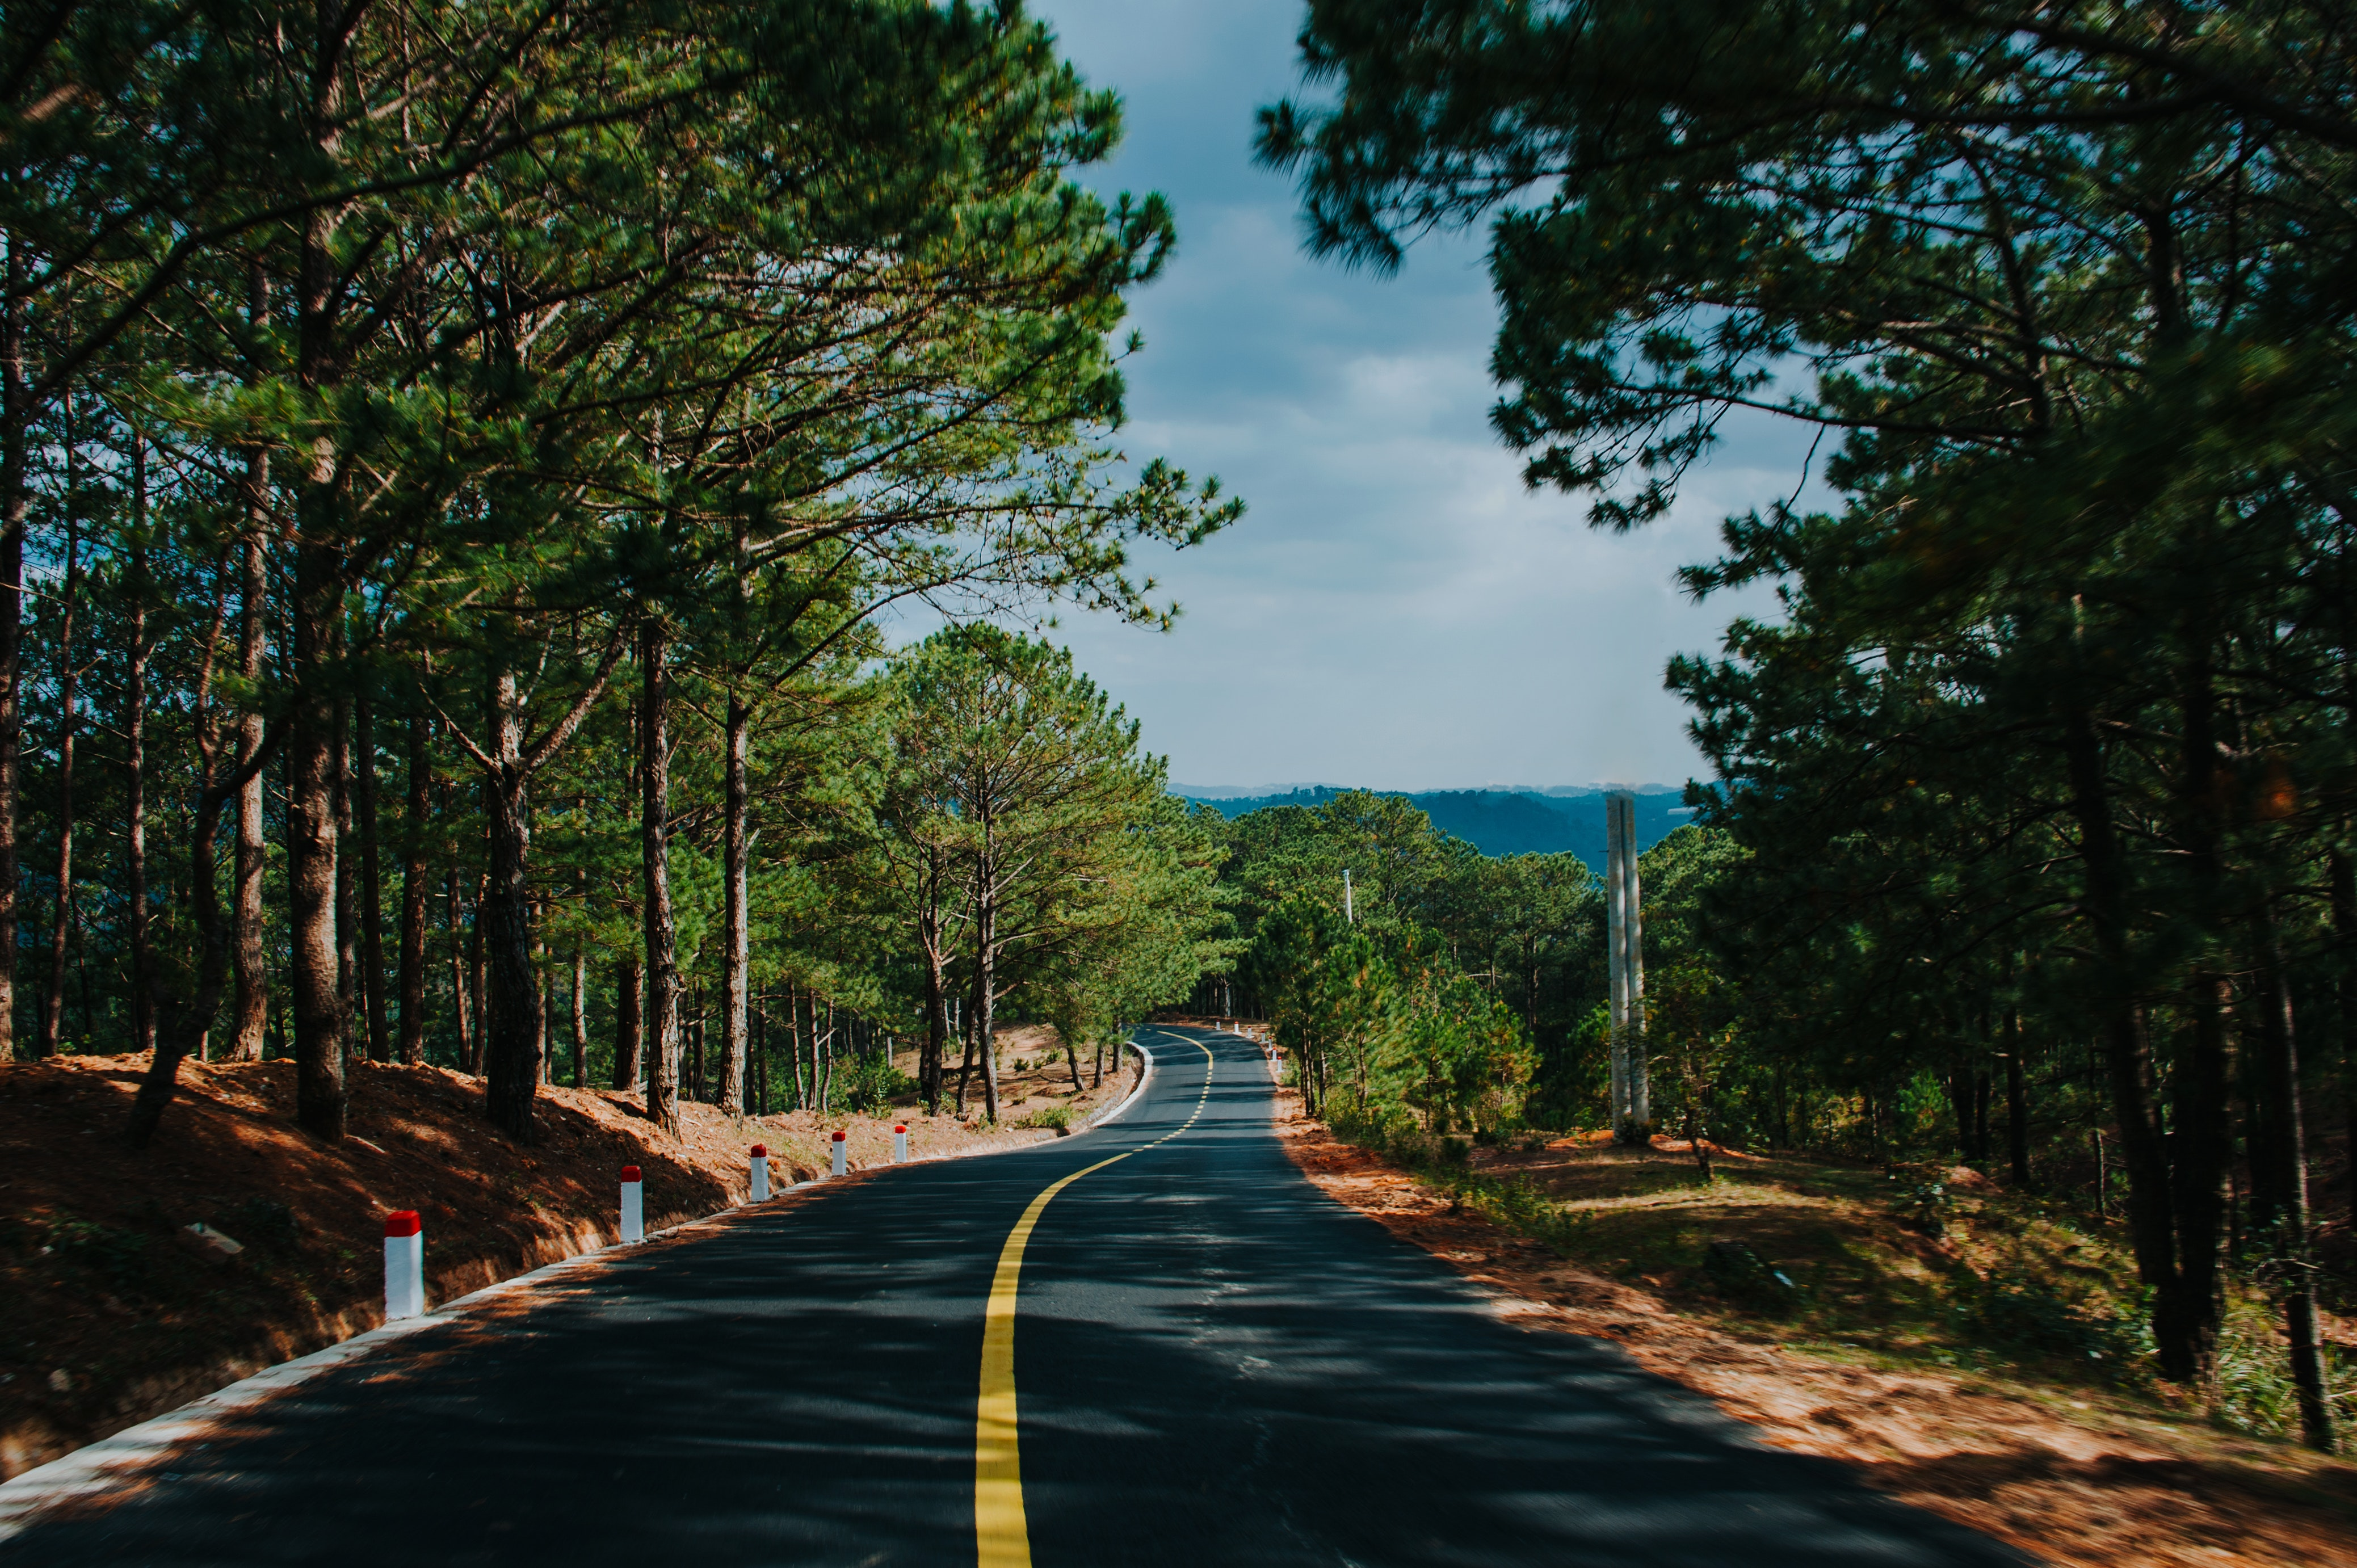 Green Trees, Asphalt, Outdoors, Trees, Travel, HQ Photo